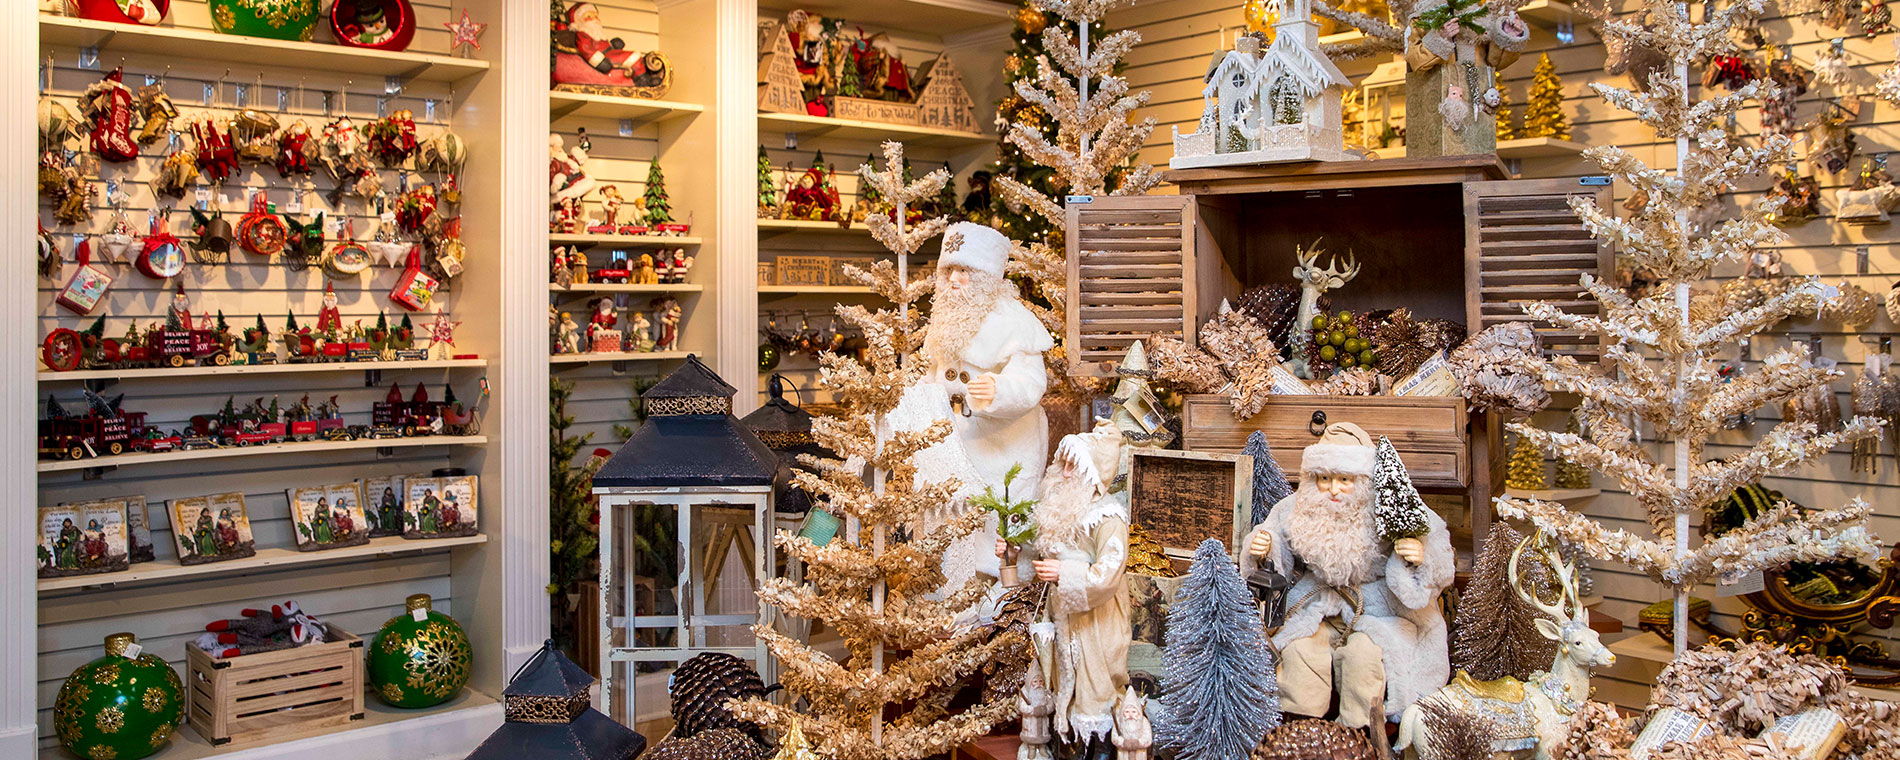 Christmas Collections | WinterFest Shopping | Kings Island